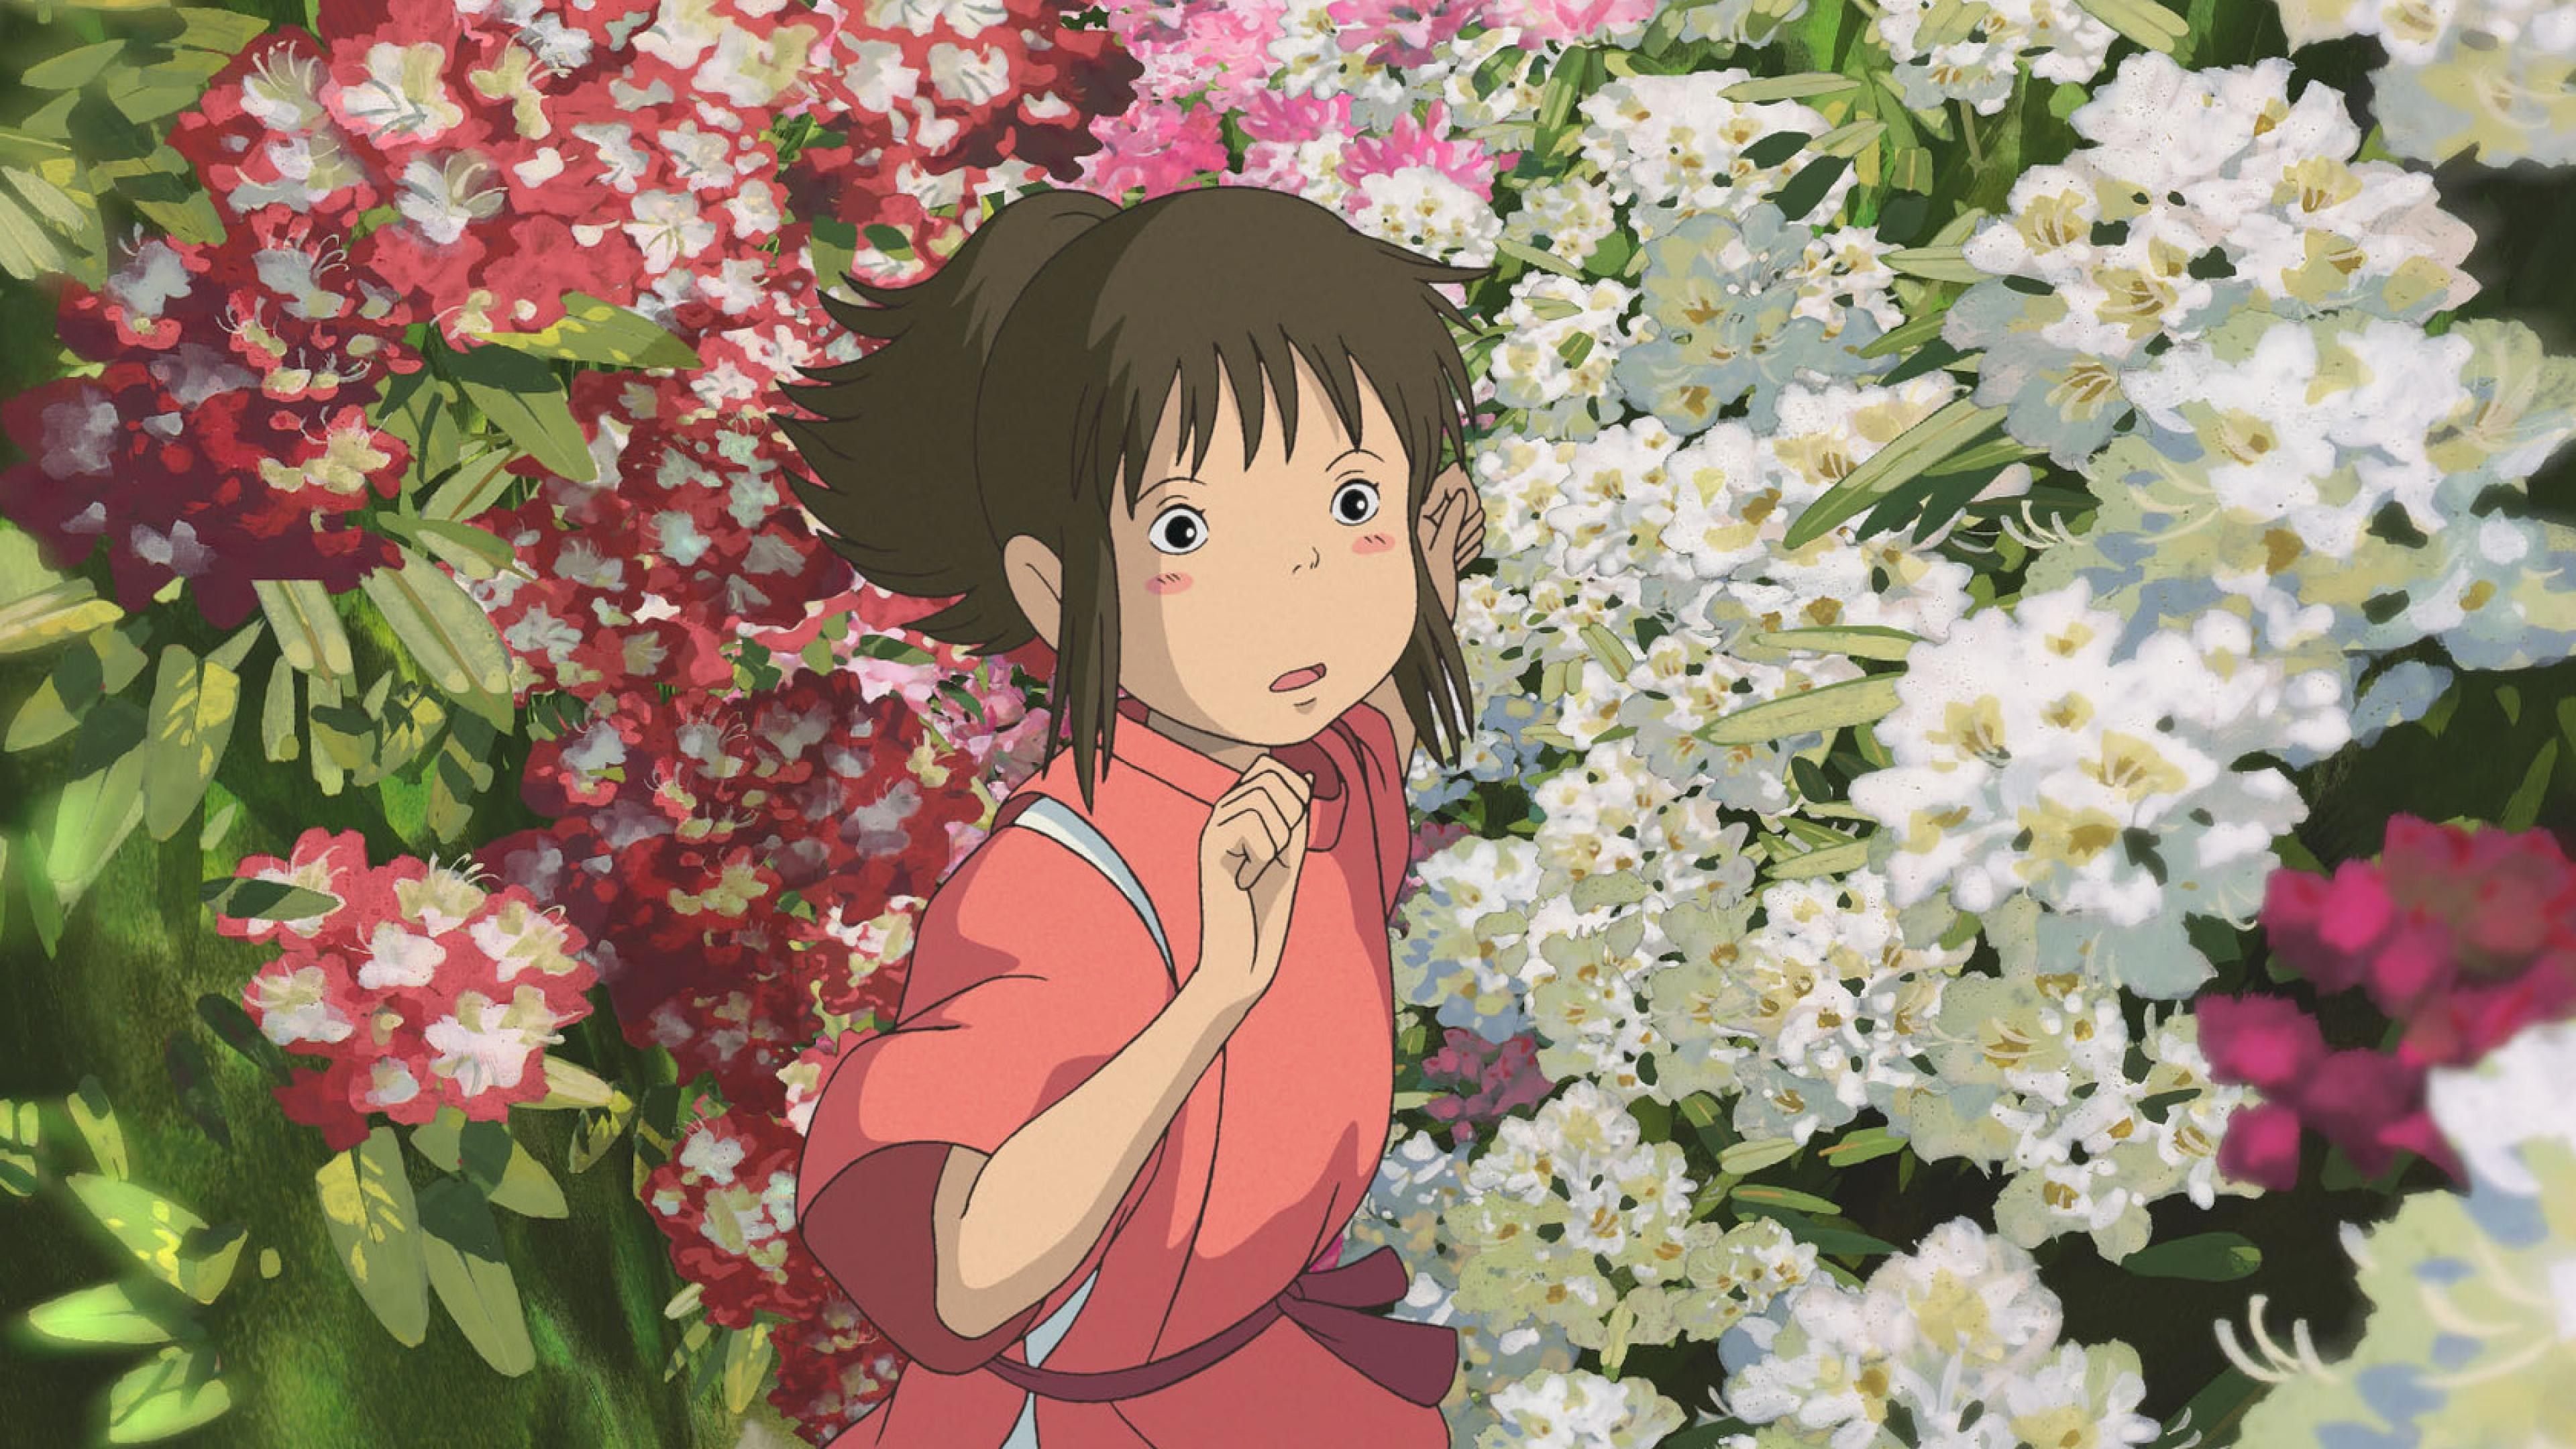 Download Free Spirited Away Wallpaper Hd Spirited Away Wallpaper Studio Ghibli Movies Ghibli Art